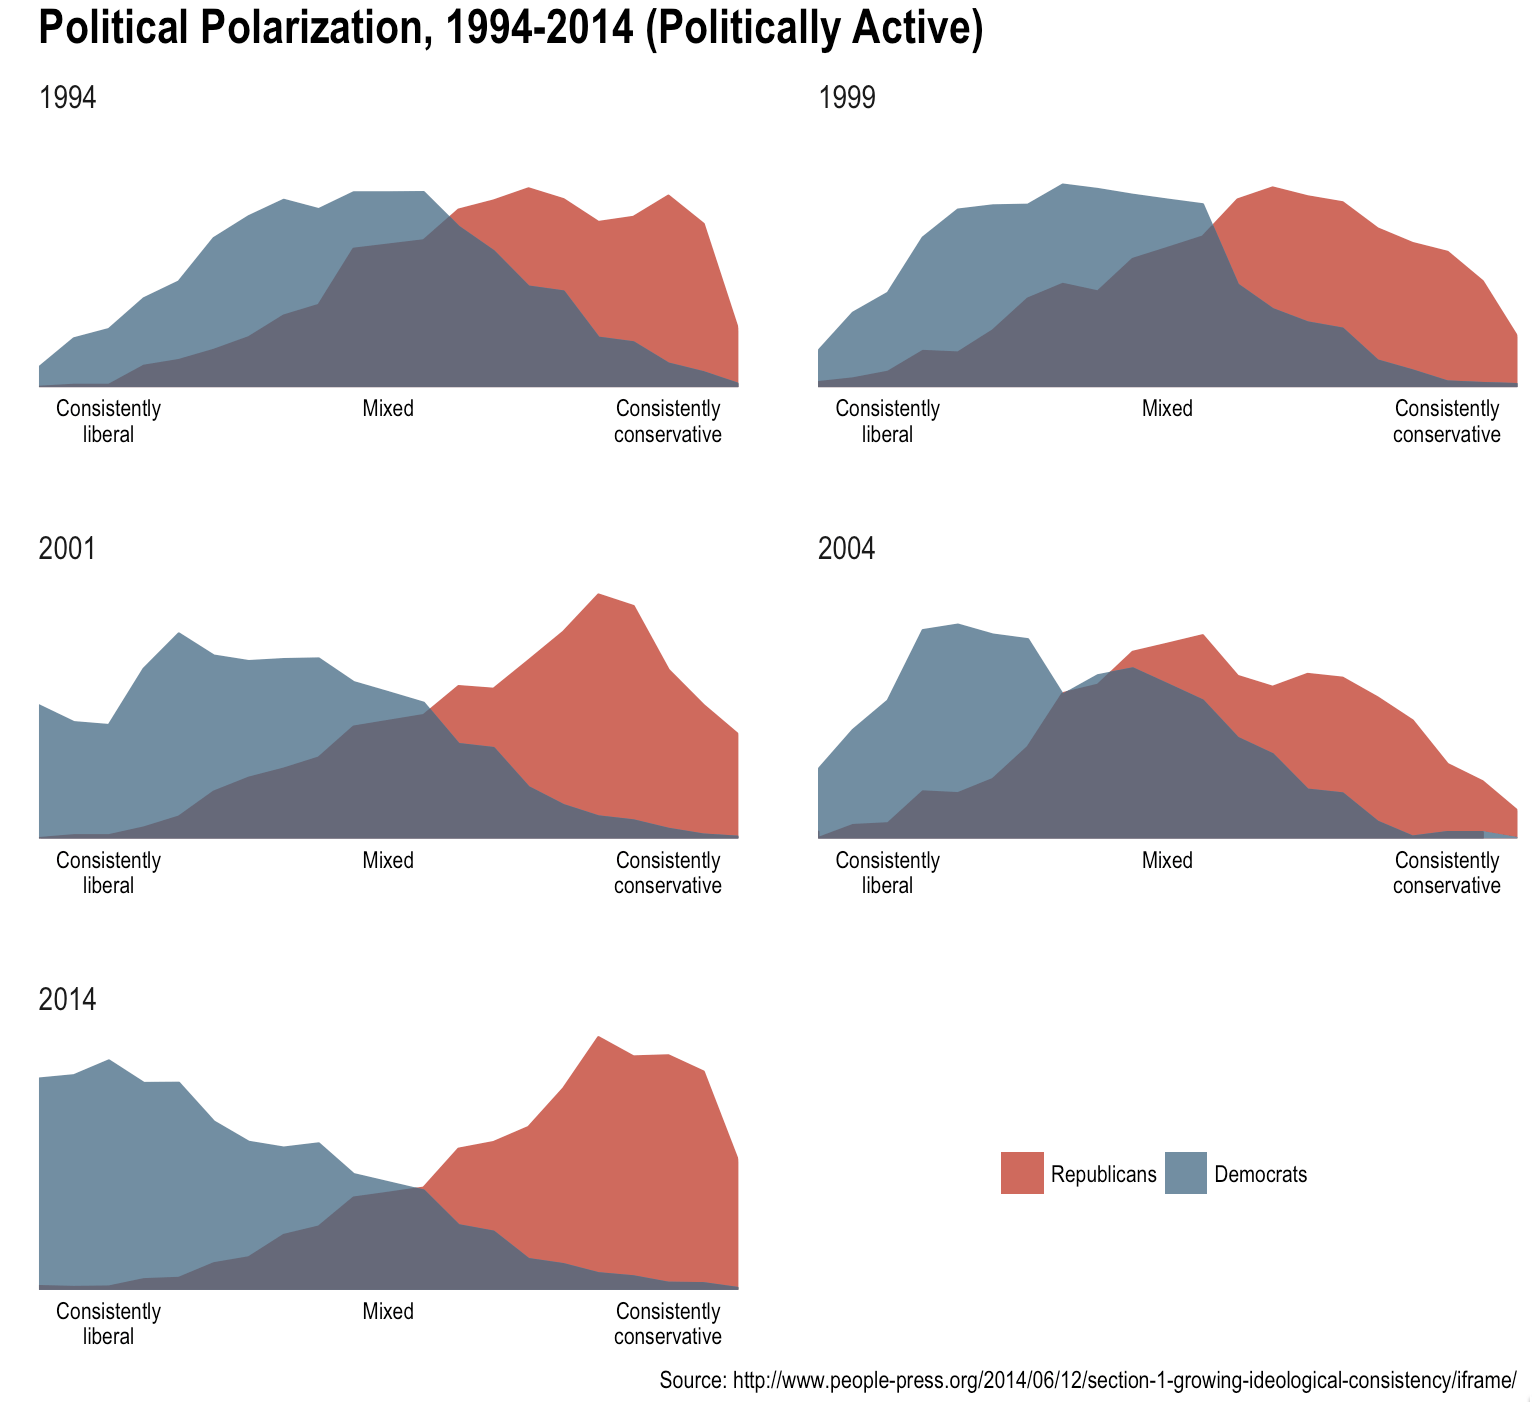 Bridging The Political [Polygons] Gap with ggplot2